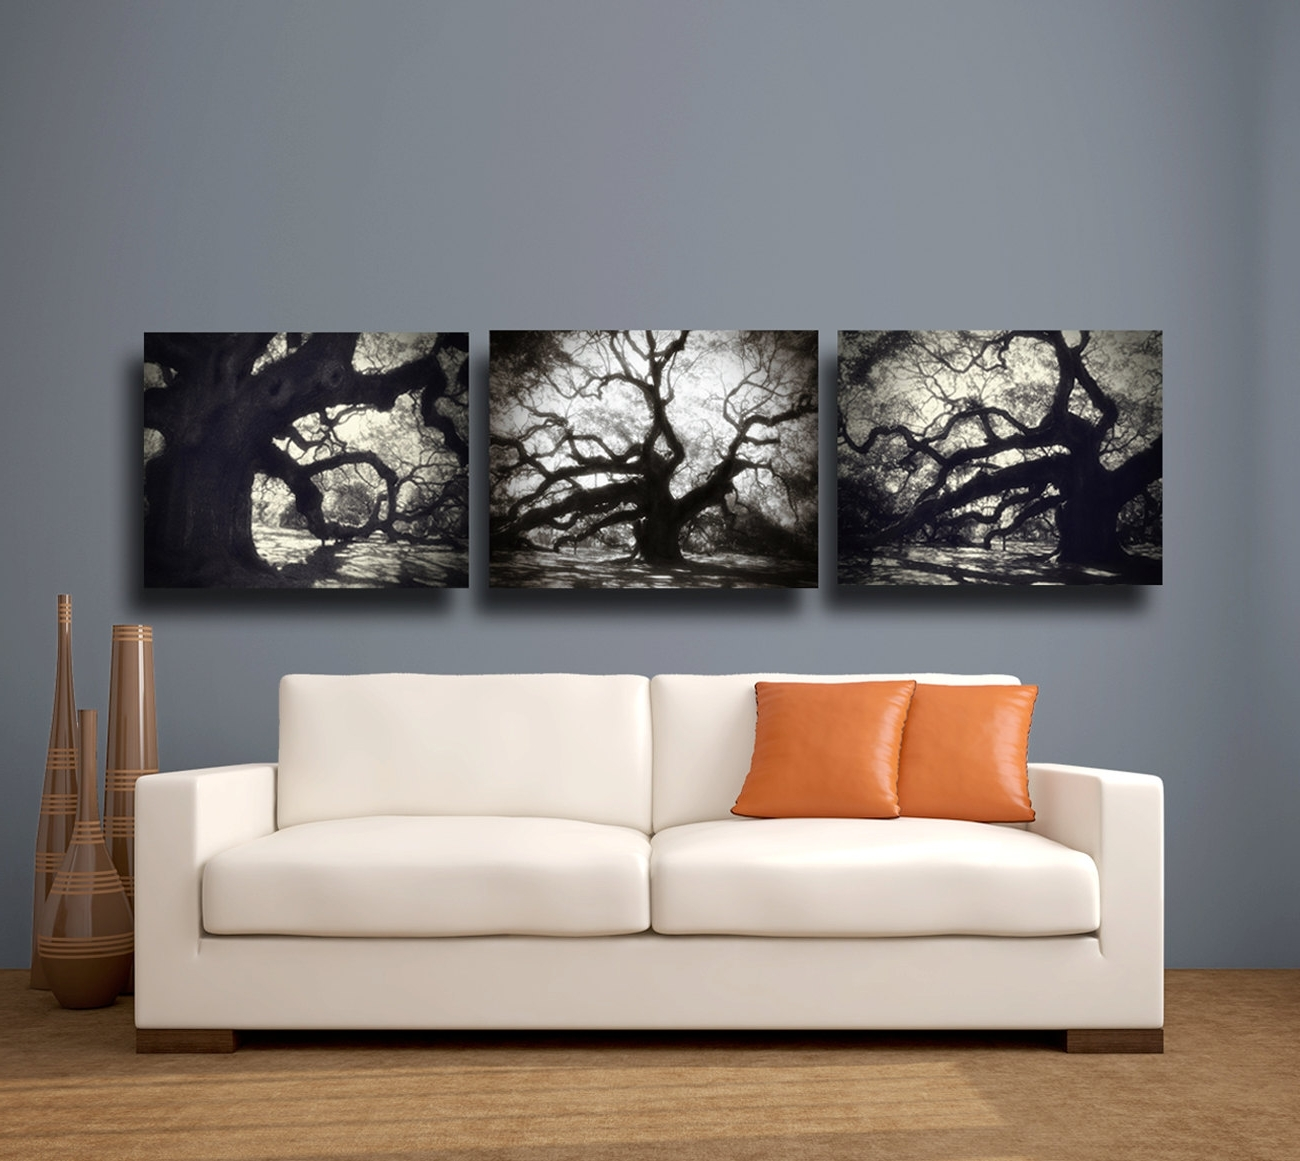 Latest Wall Art Designs: Black And White Canvas Wall Art Astounding With Regard To Huge Wall Art Canvas (View 11 of 15)